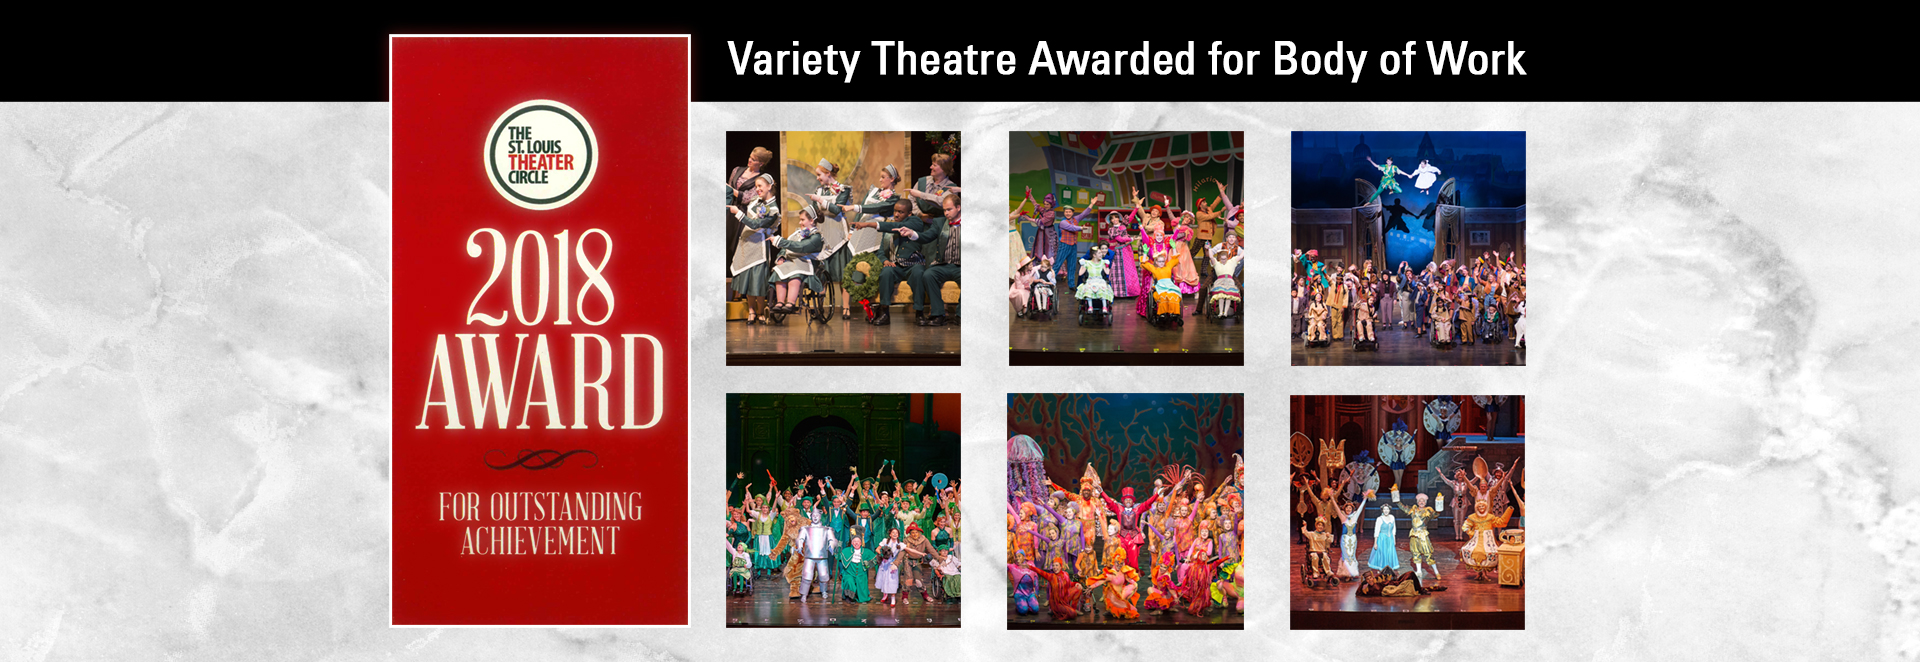 Variety Theatre Collage of shows